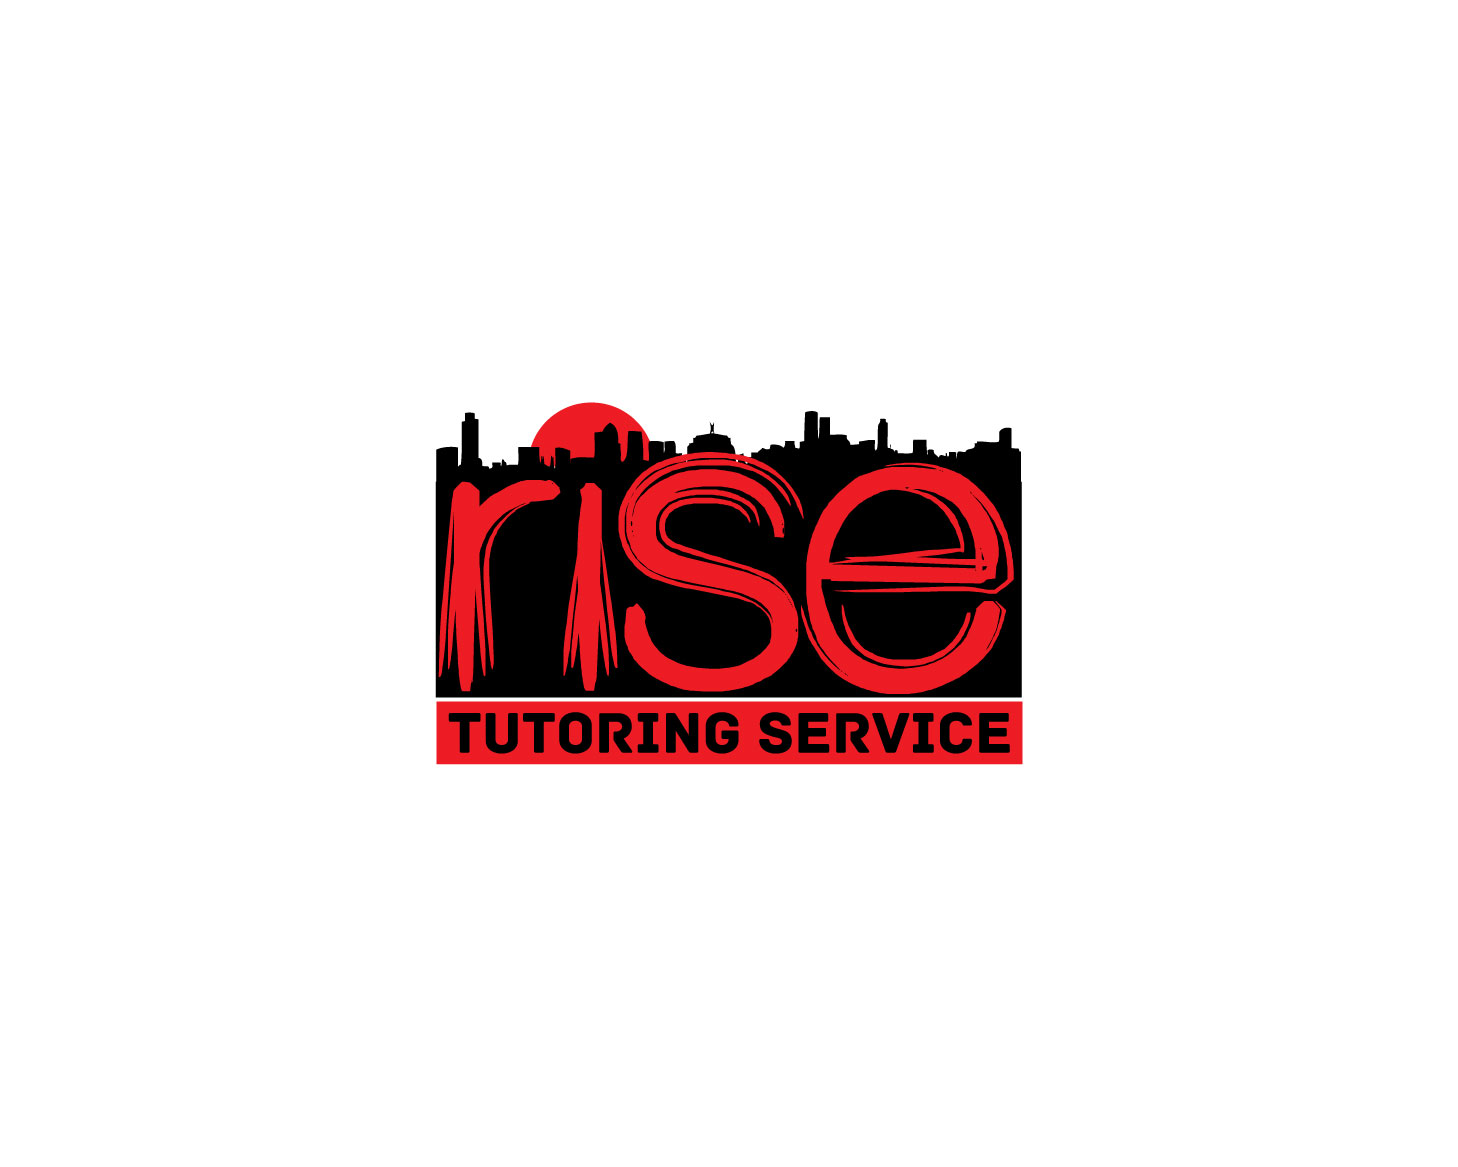 Logo Design by Rowel Samson - Entry No. 48 in the Logo Design Contest Imaginative Logo Design for Rise Tutoring Service.